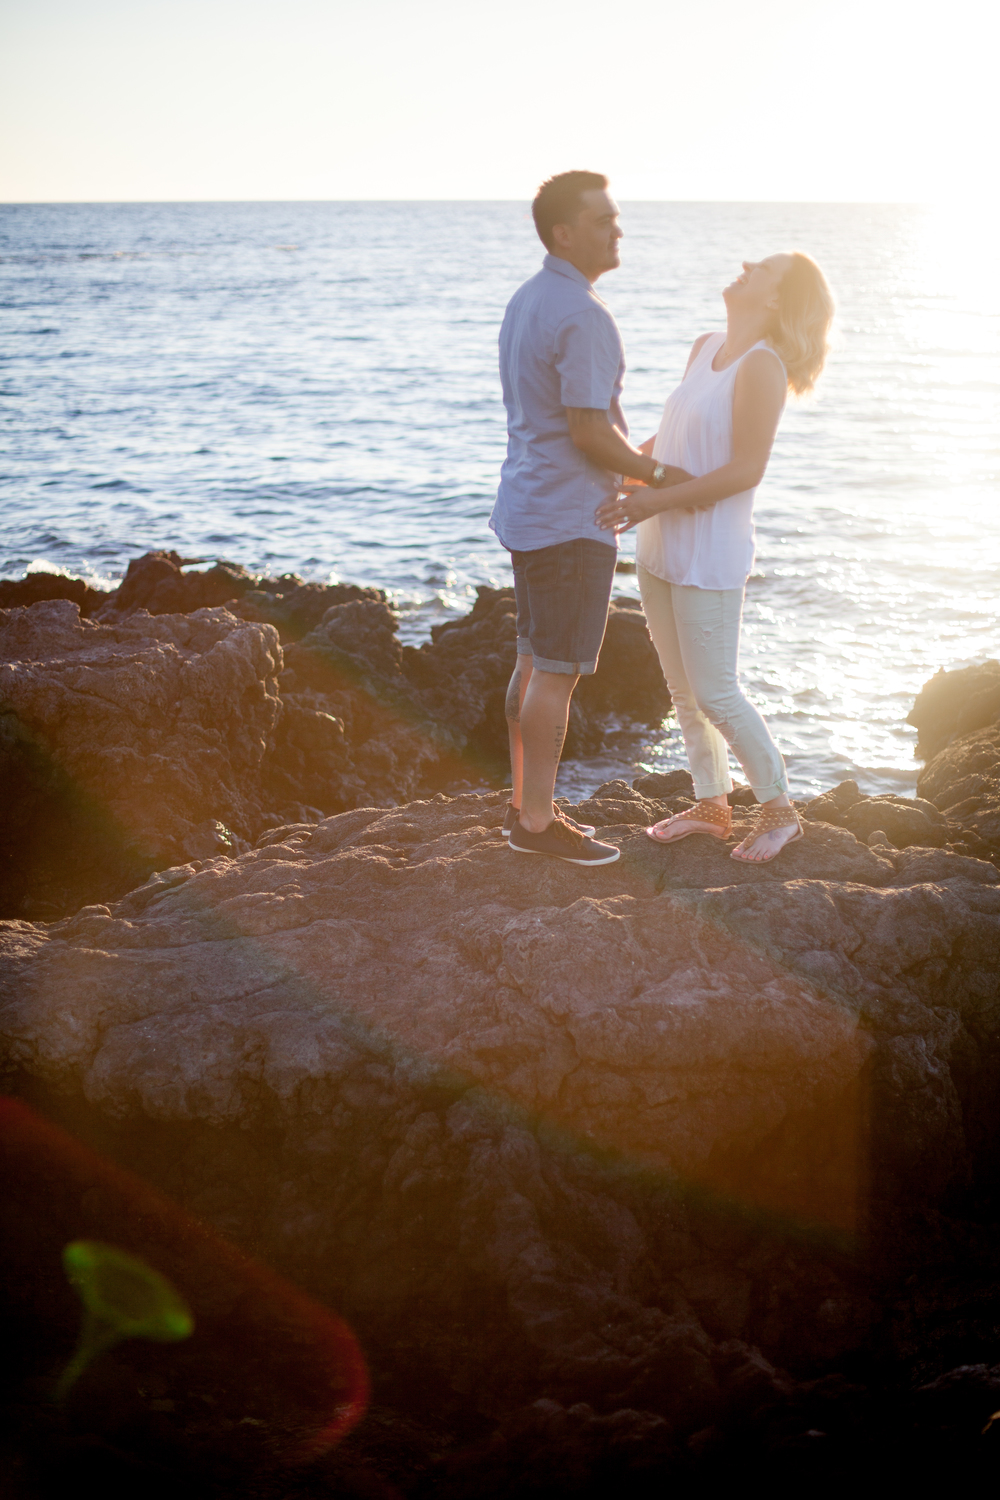 big island hawaii engagement photography 20150529183517-1.jpg